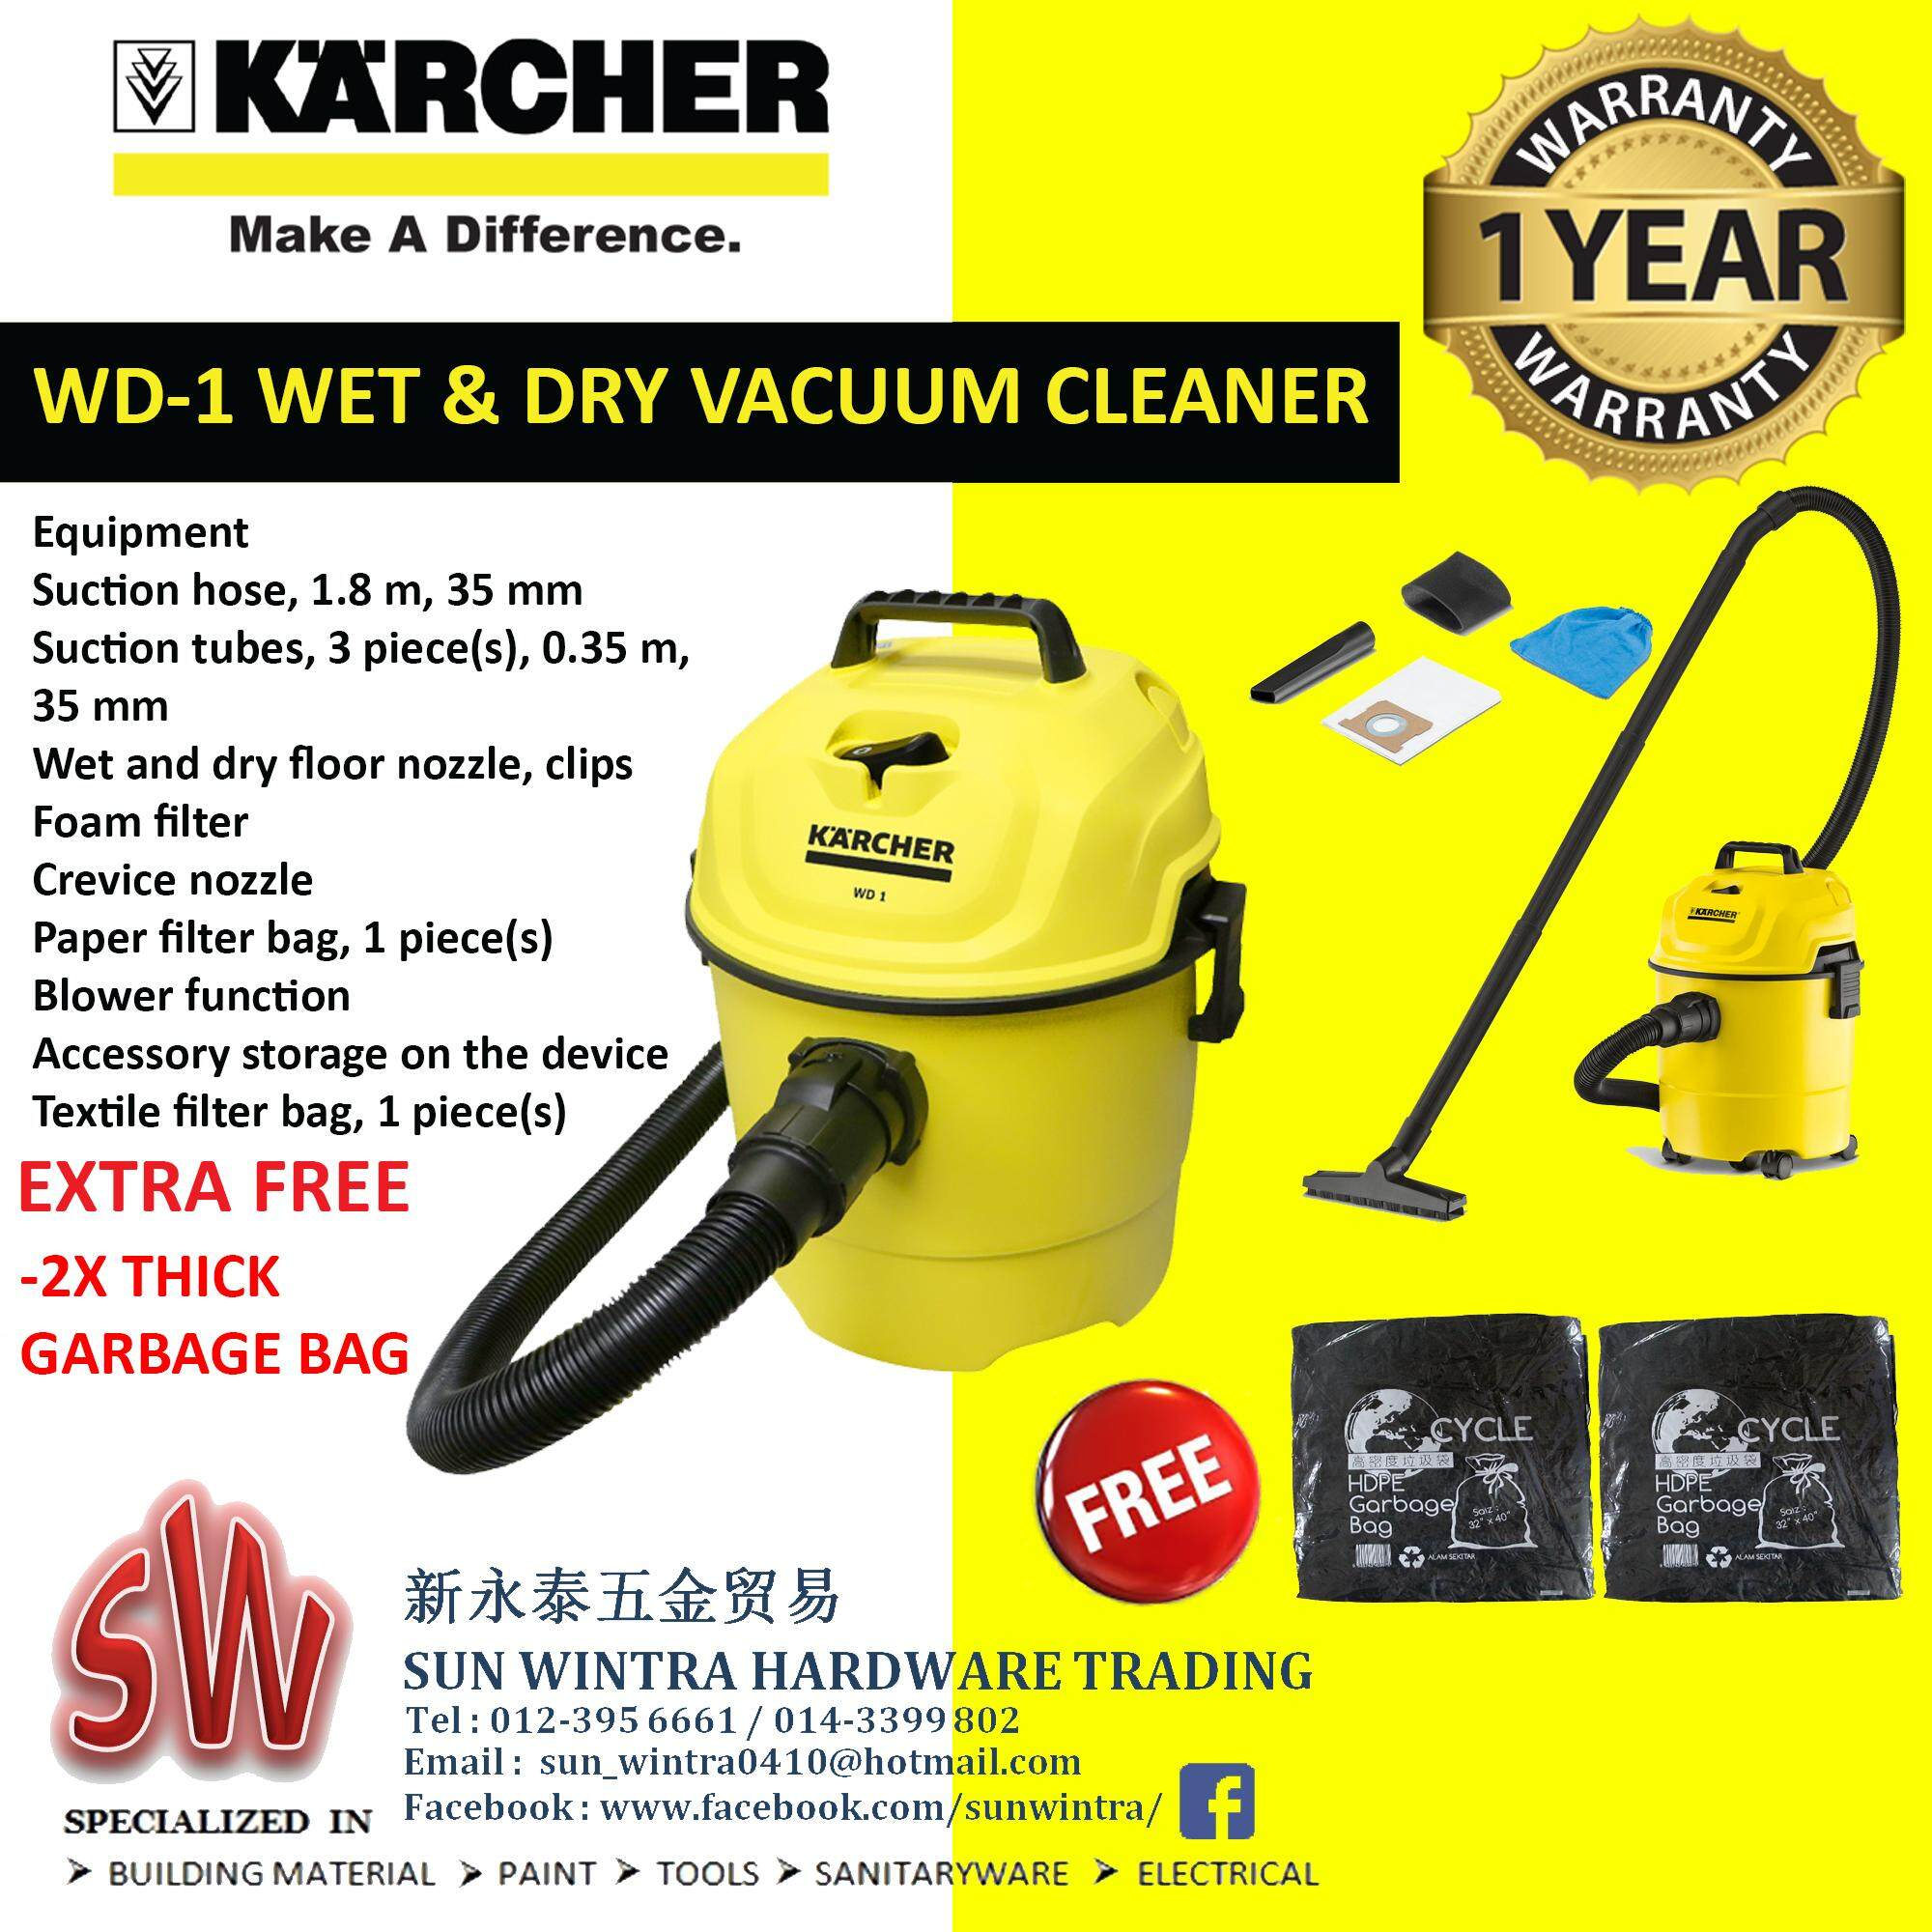 Karcher Vacuum Cleaners Price In Malaysia Best Cleaner Wd 2 Wd1 Wet And Dry 1000w Foc Extra 2x Thick Garbage Bag